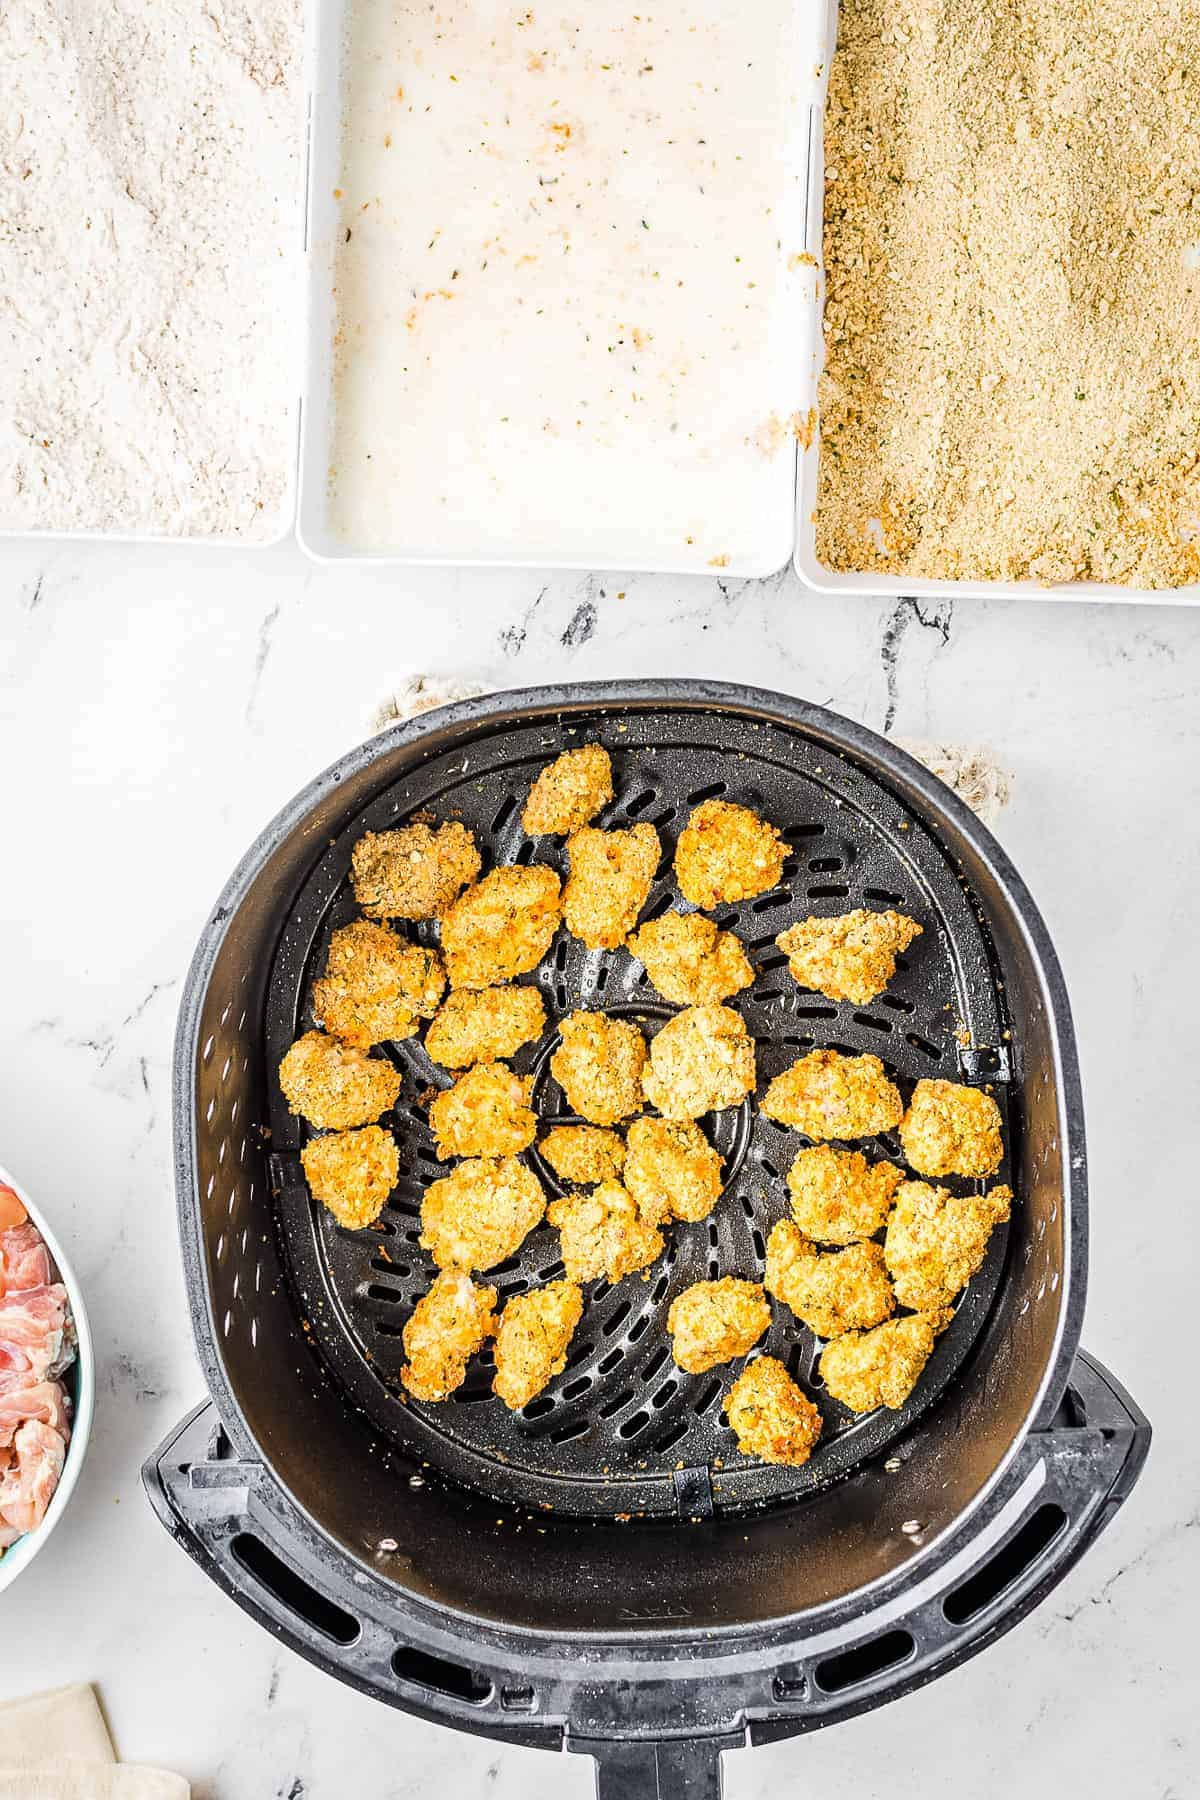 Cooked chicken nuggets in air fryer basket